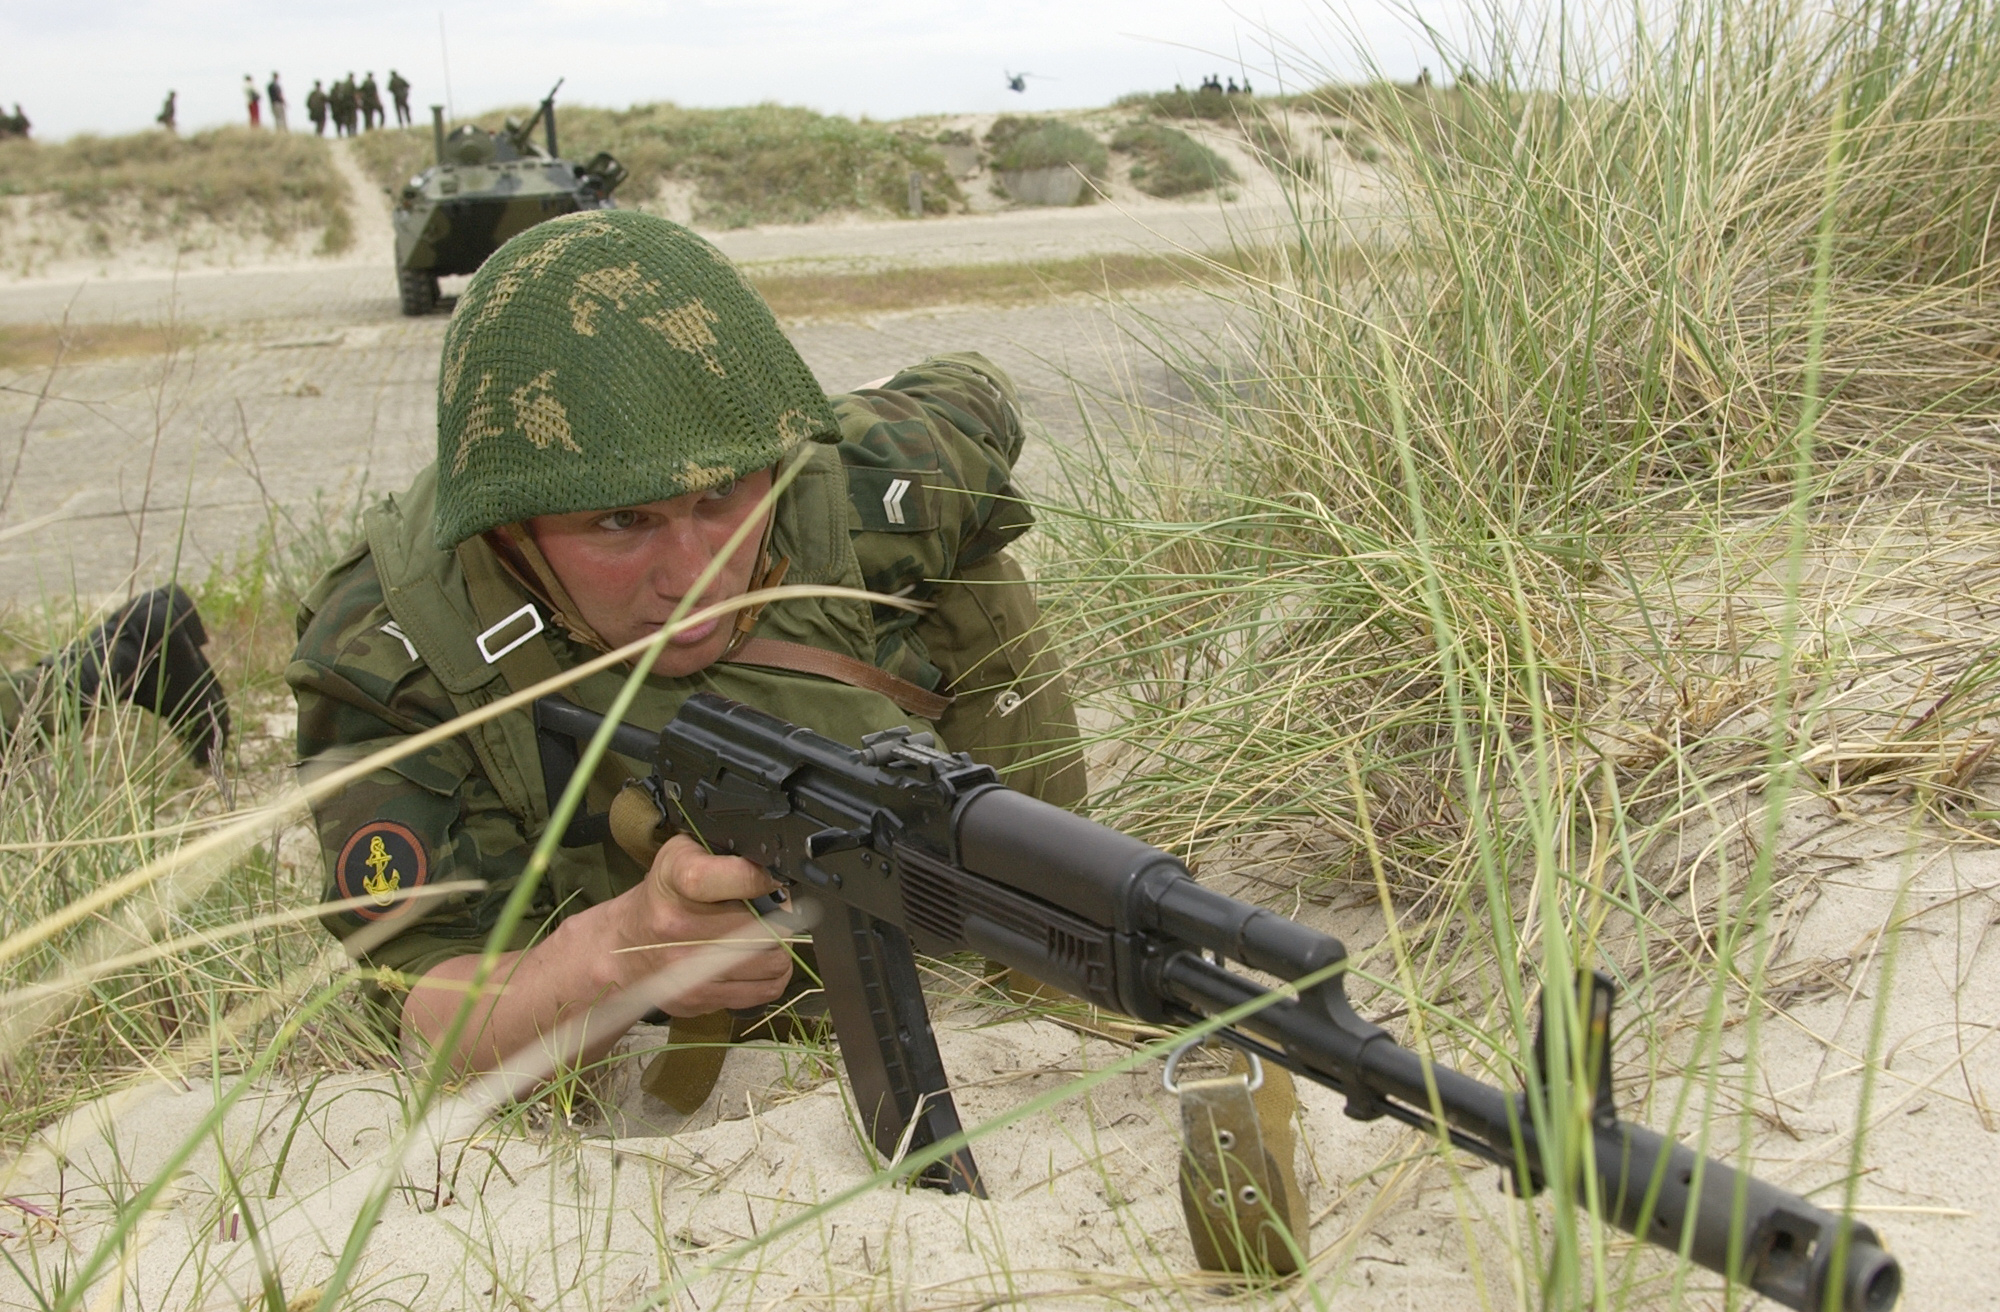 http://upload.wikimedia.org/wikipedia/commons/c/c8/Russian_Naval_Infantryman.jpg